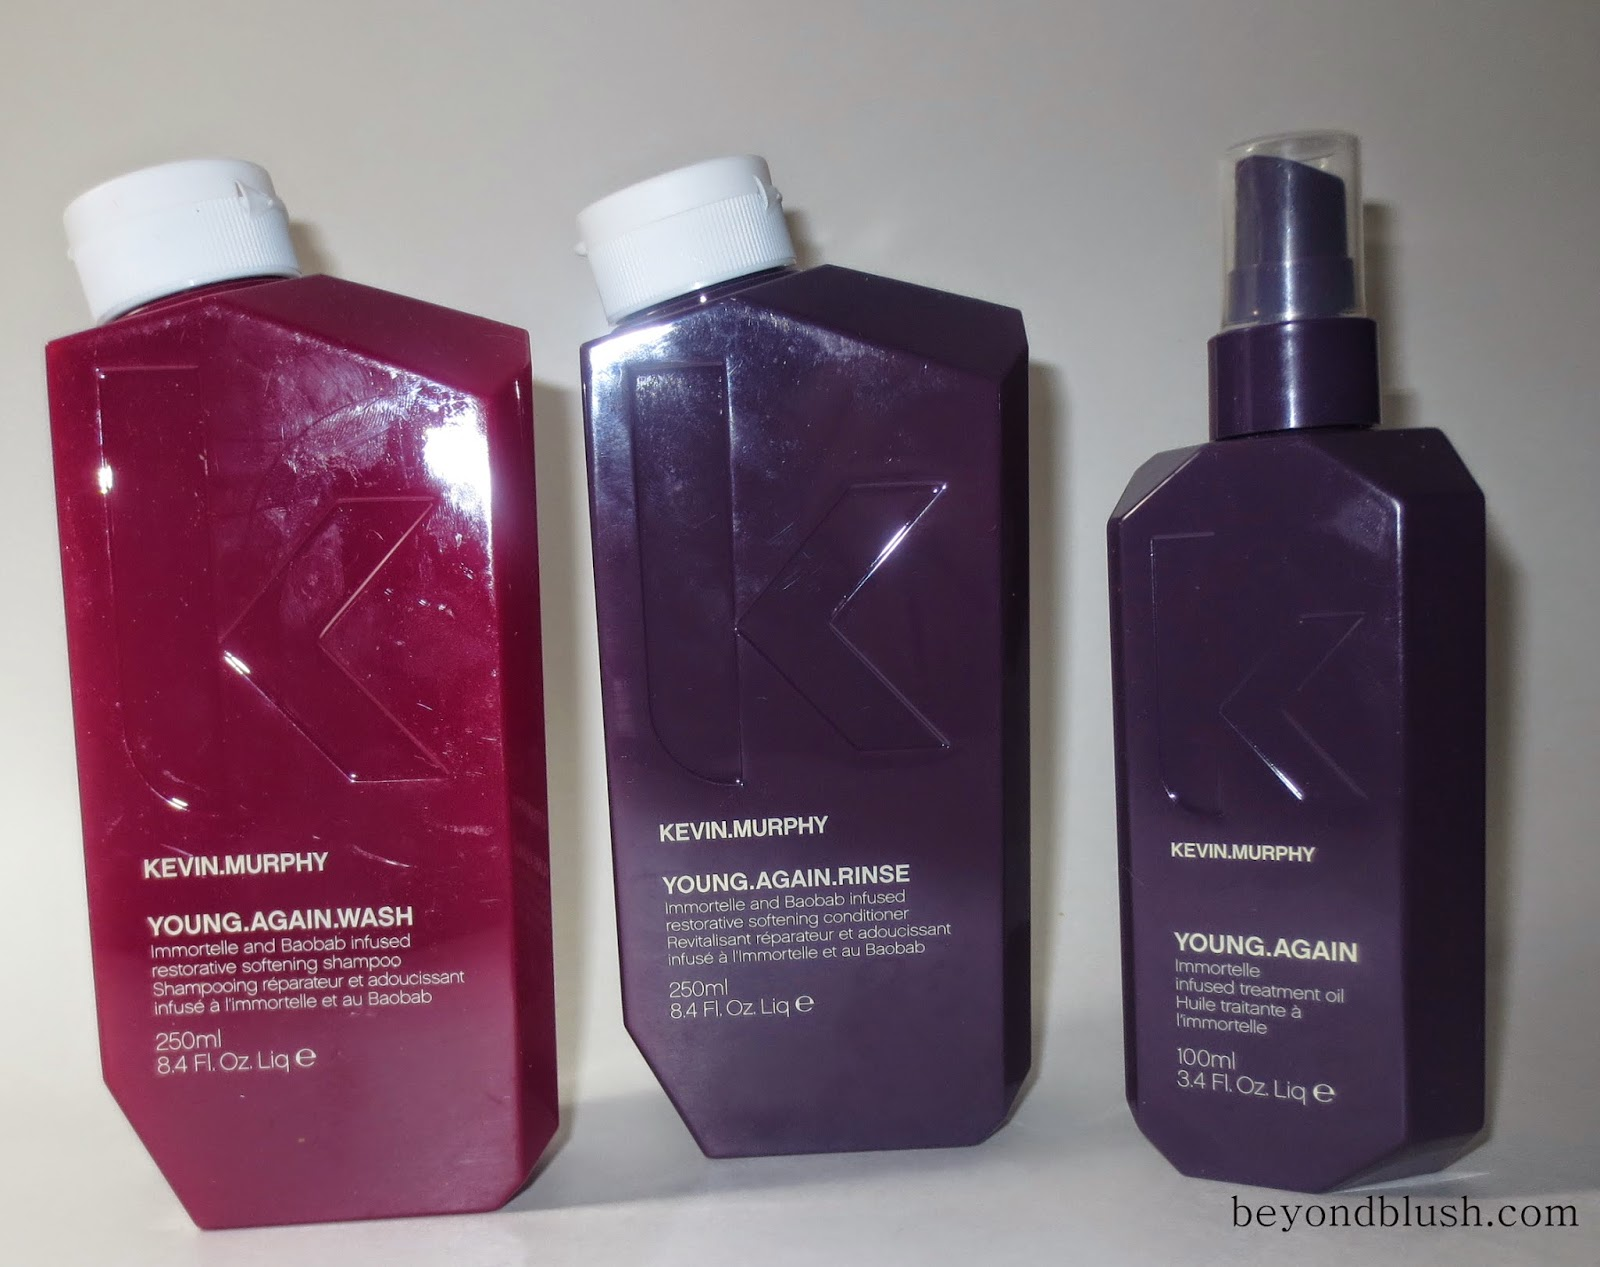 KEVIN.MURPHY Young.Again Wash, Rinse, & Immortelle Infused Treatment Oil